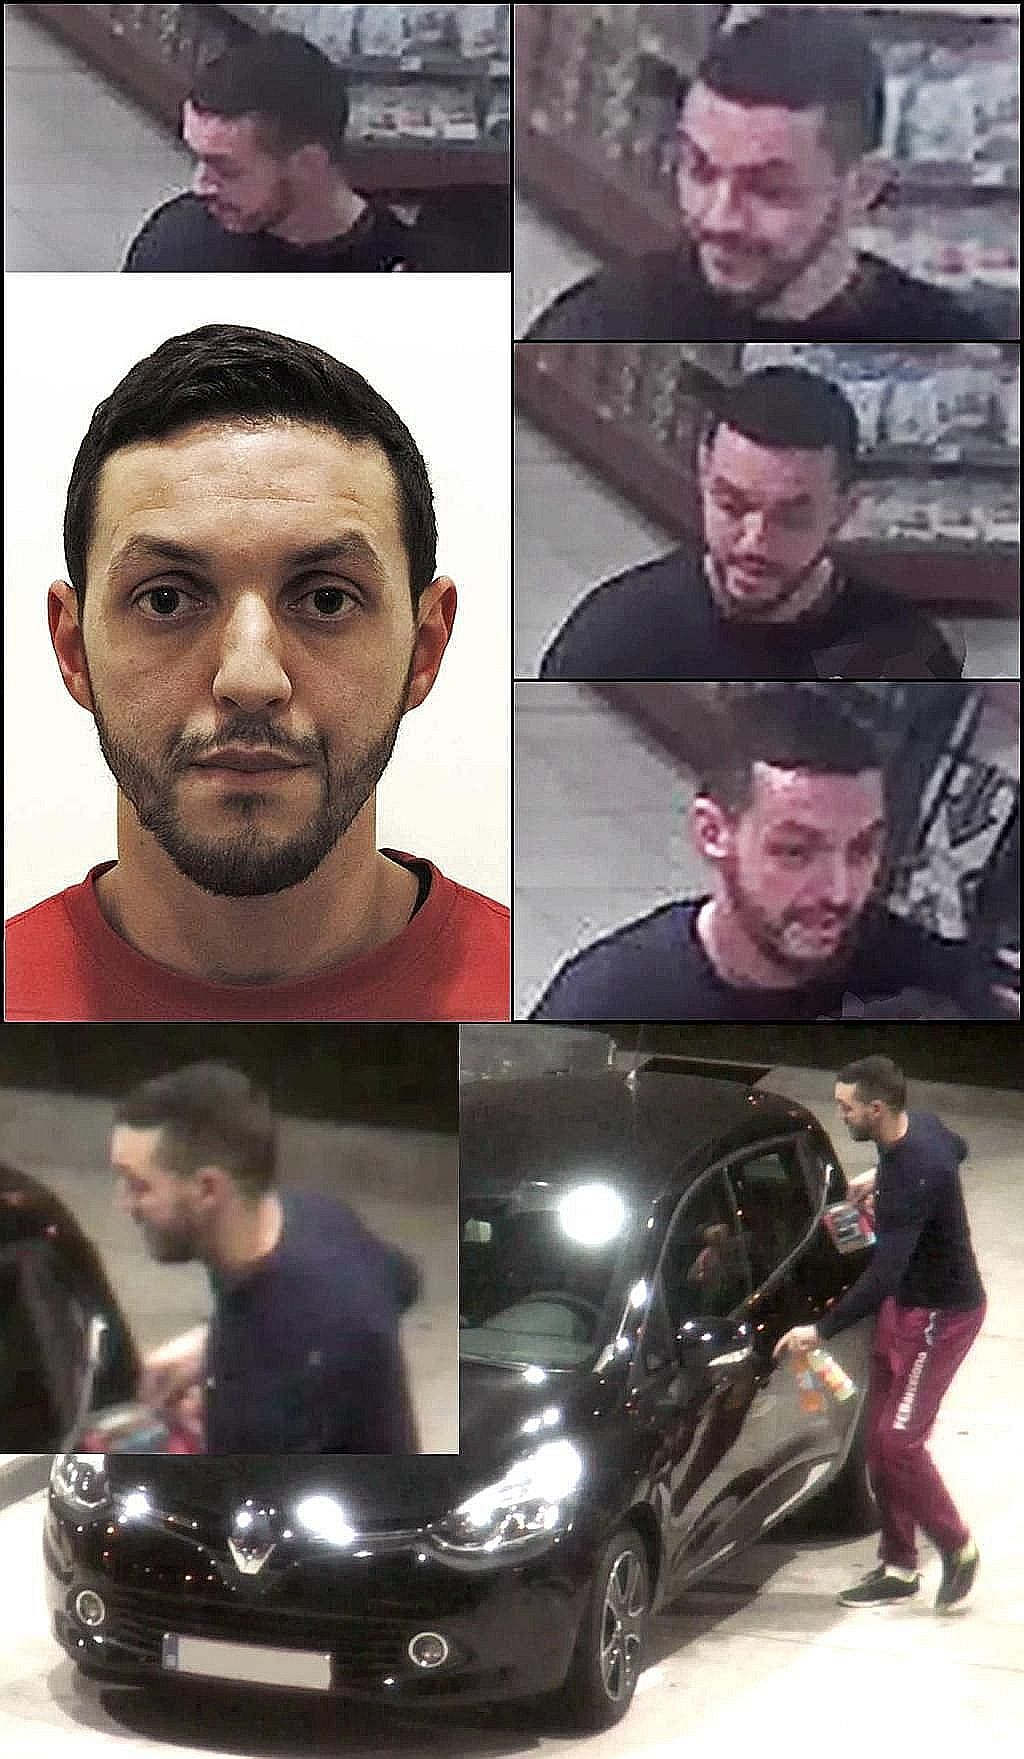 Belgium's state prosecutor has issued an international arrest warrant for Mohamed Abrini (left, in CCTV images), who was seen with Salah Abdeslam, suspected to be the eighth attacker mentioned by ISIS when it claimed responsibility for the Paris atta